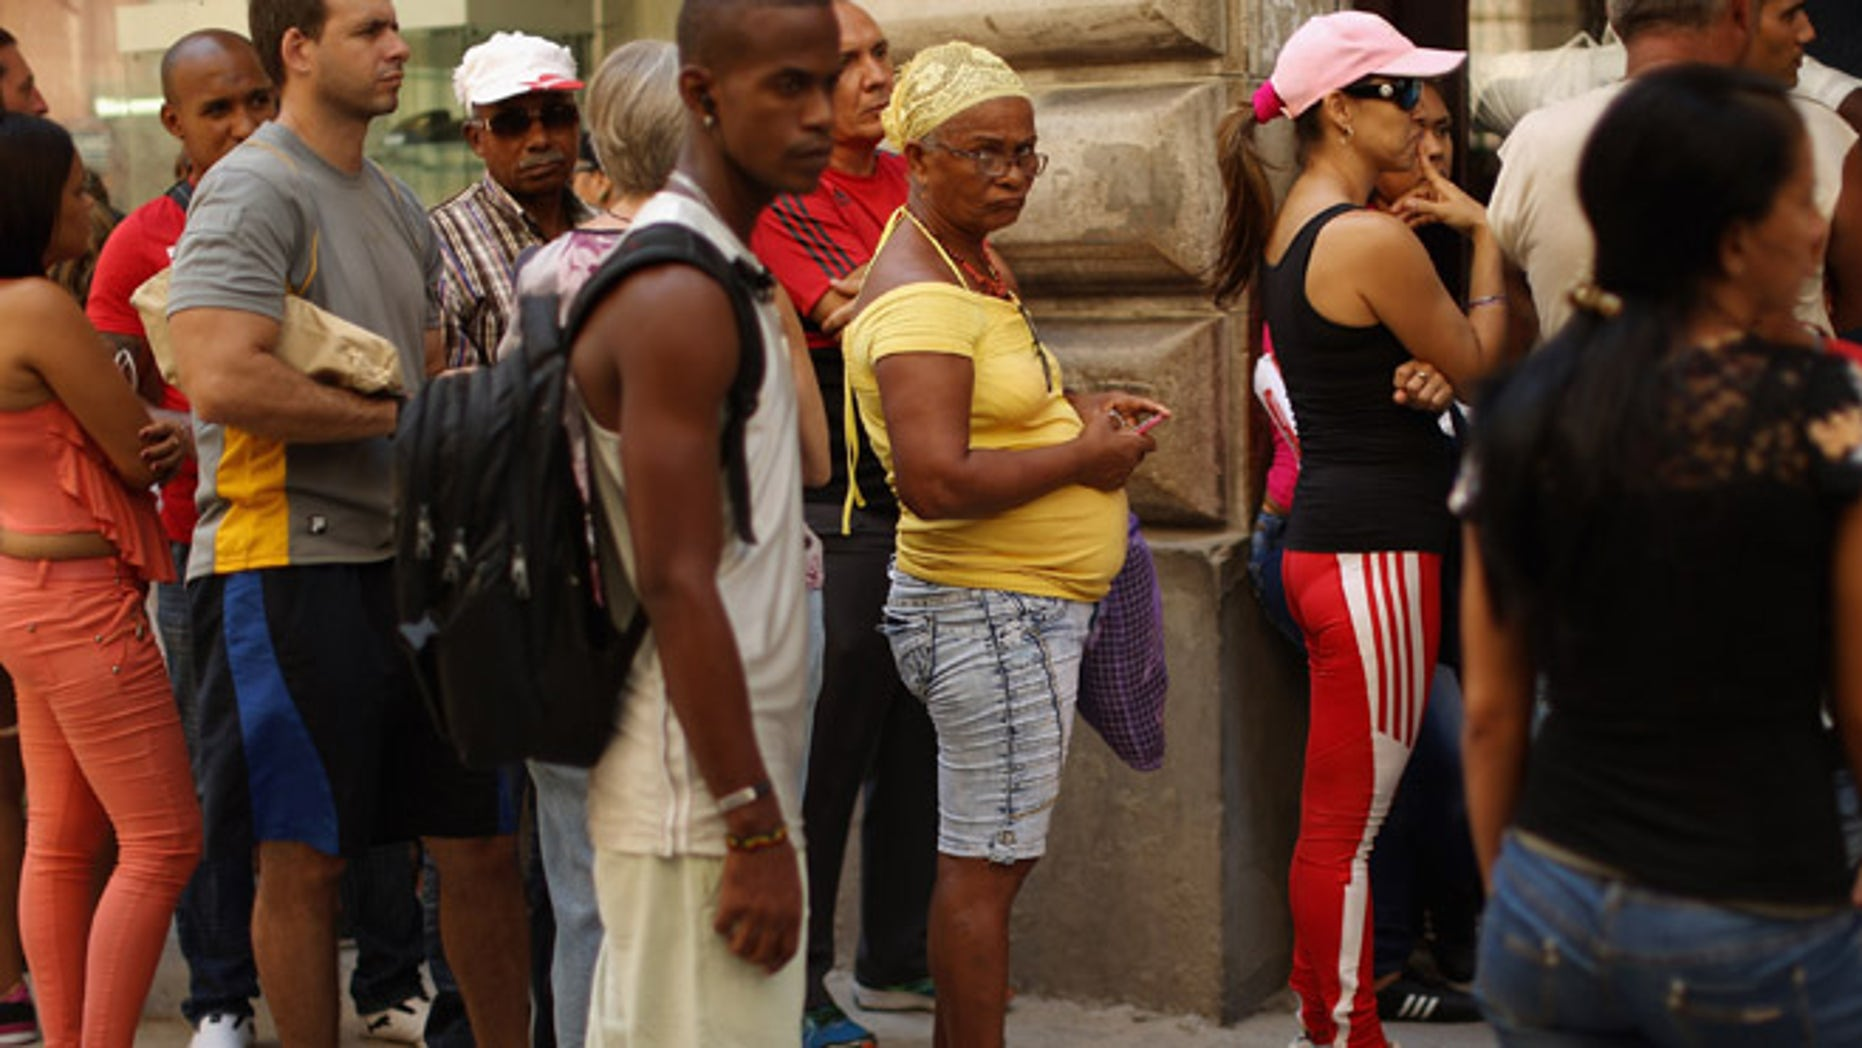 HAVANA, CUBA - AUGUST 13:  Cubans stand in line for hours outside an ETECSA state-run telecommunication store to add credit to their mobile phone accounts or activate mobile email in the old part of the city August 13, 2015 in Havana, Cuba. U.S. Secretary of State John Kerry will visit Havana Friday and raise the American flag at the reopened U.S. embassy, a symbolic act after the the two former Cold War enemies reestablished diplomatic relations in July.  (Photo by Chip Somodevilla/Getty Images)